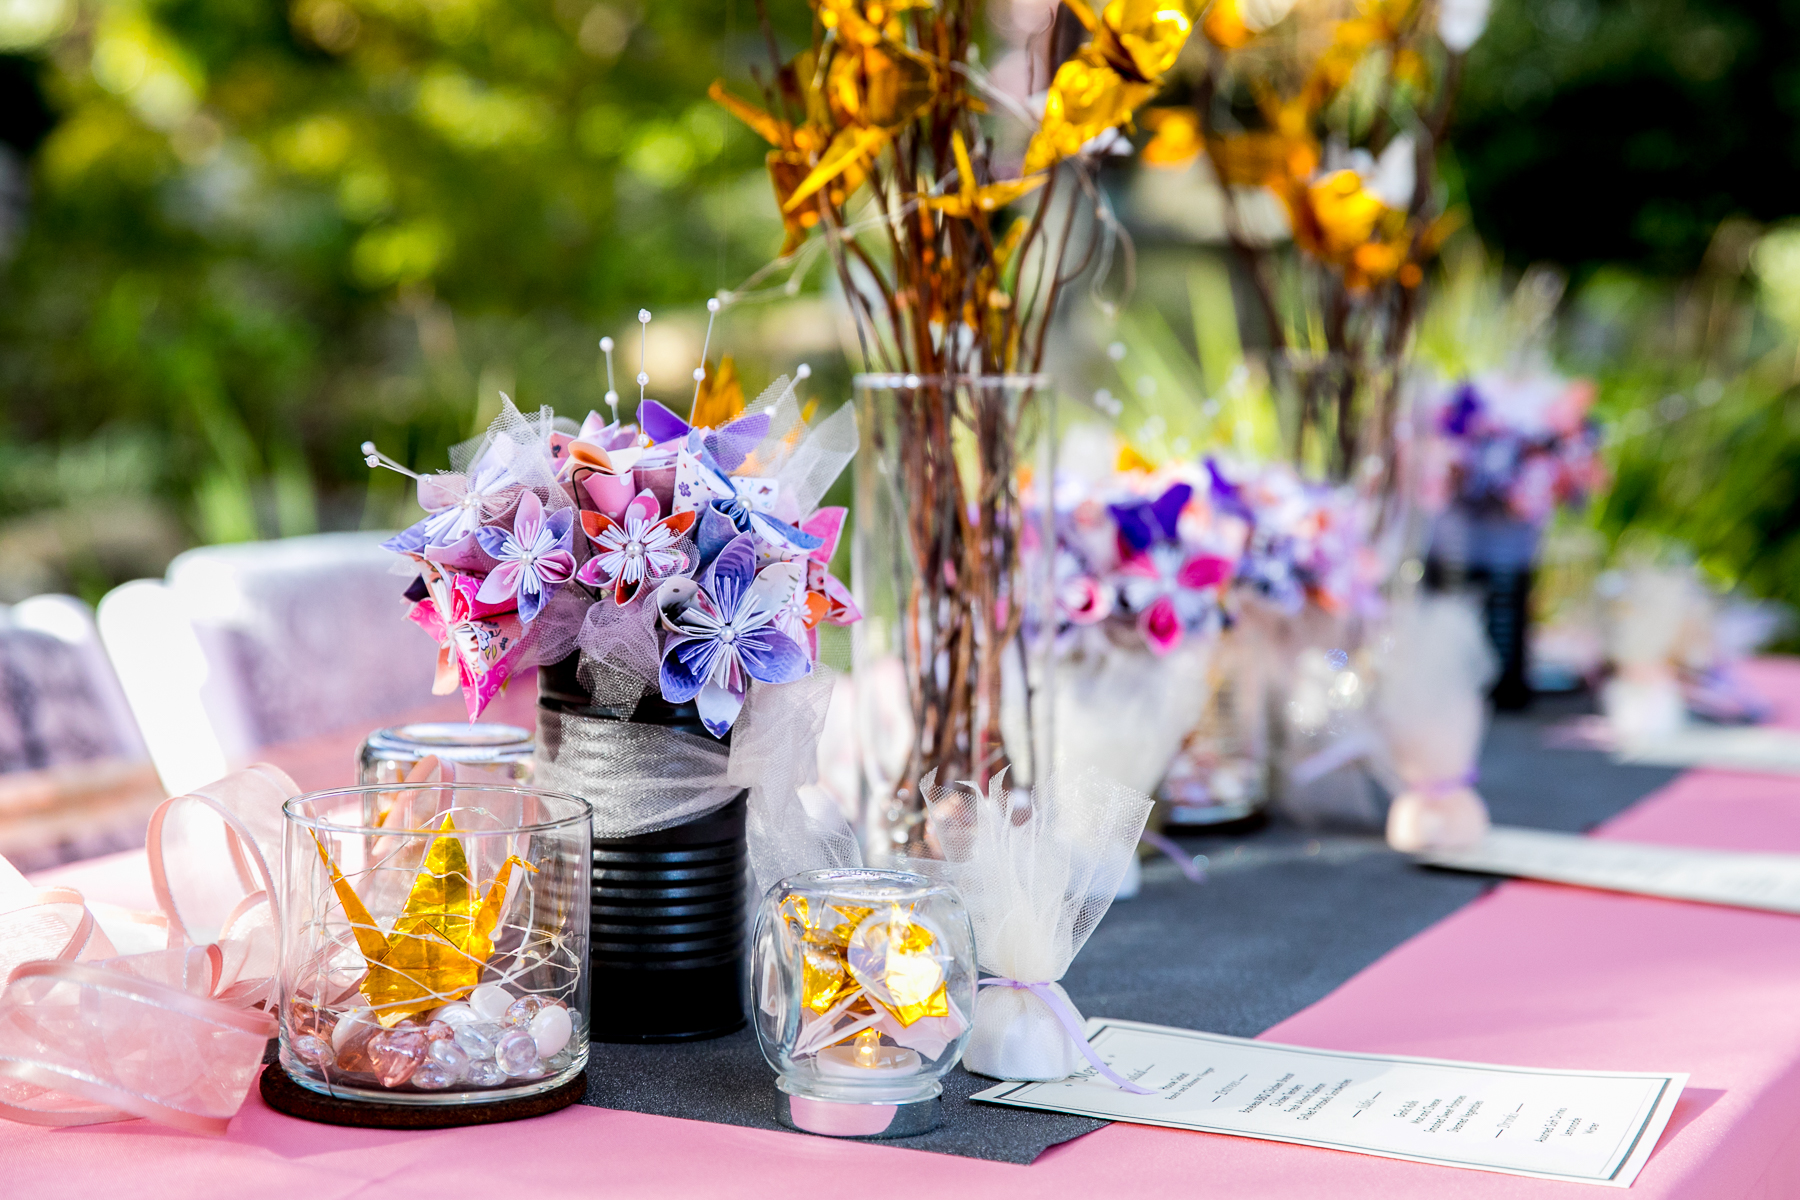 Creative Diy Bouquets And Origami Cranes At Japanese Garden In Pasadena  Photographer